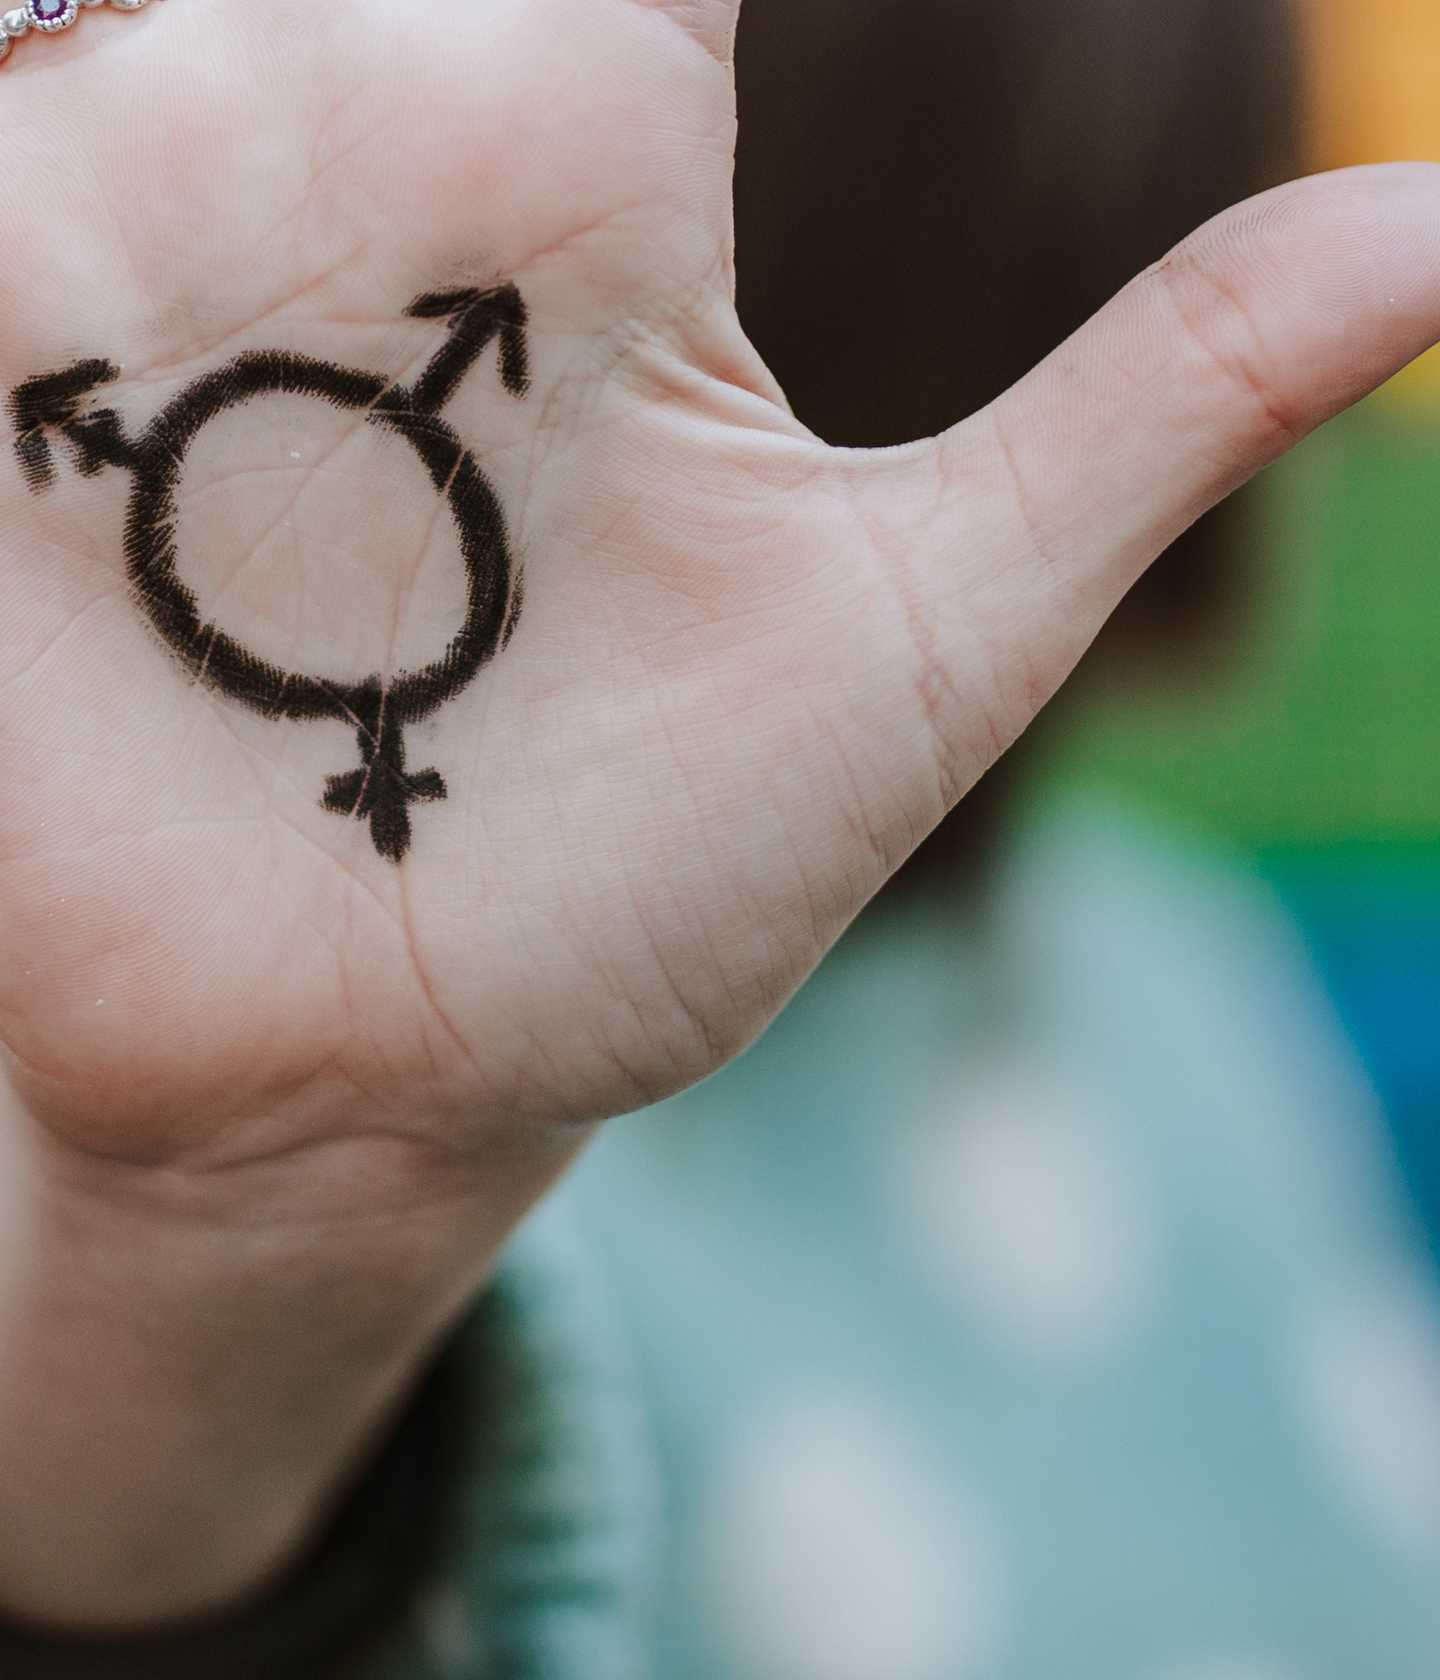 Hand with drawing of different gender signs on palm